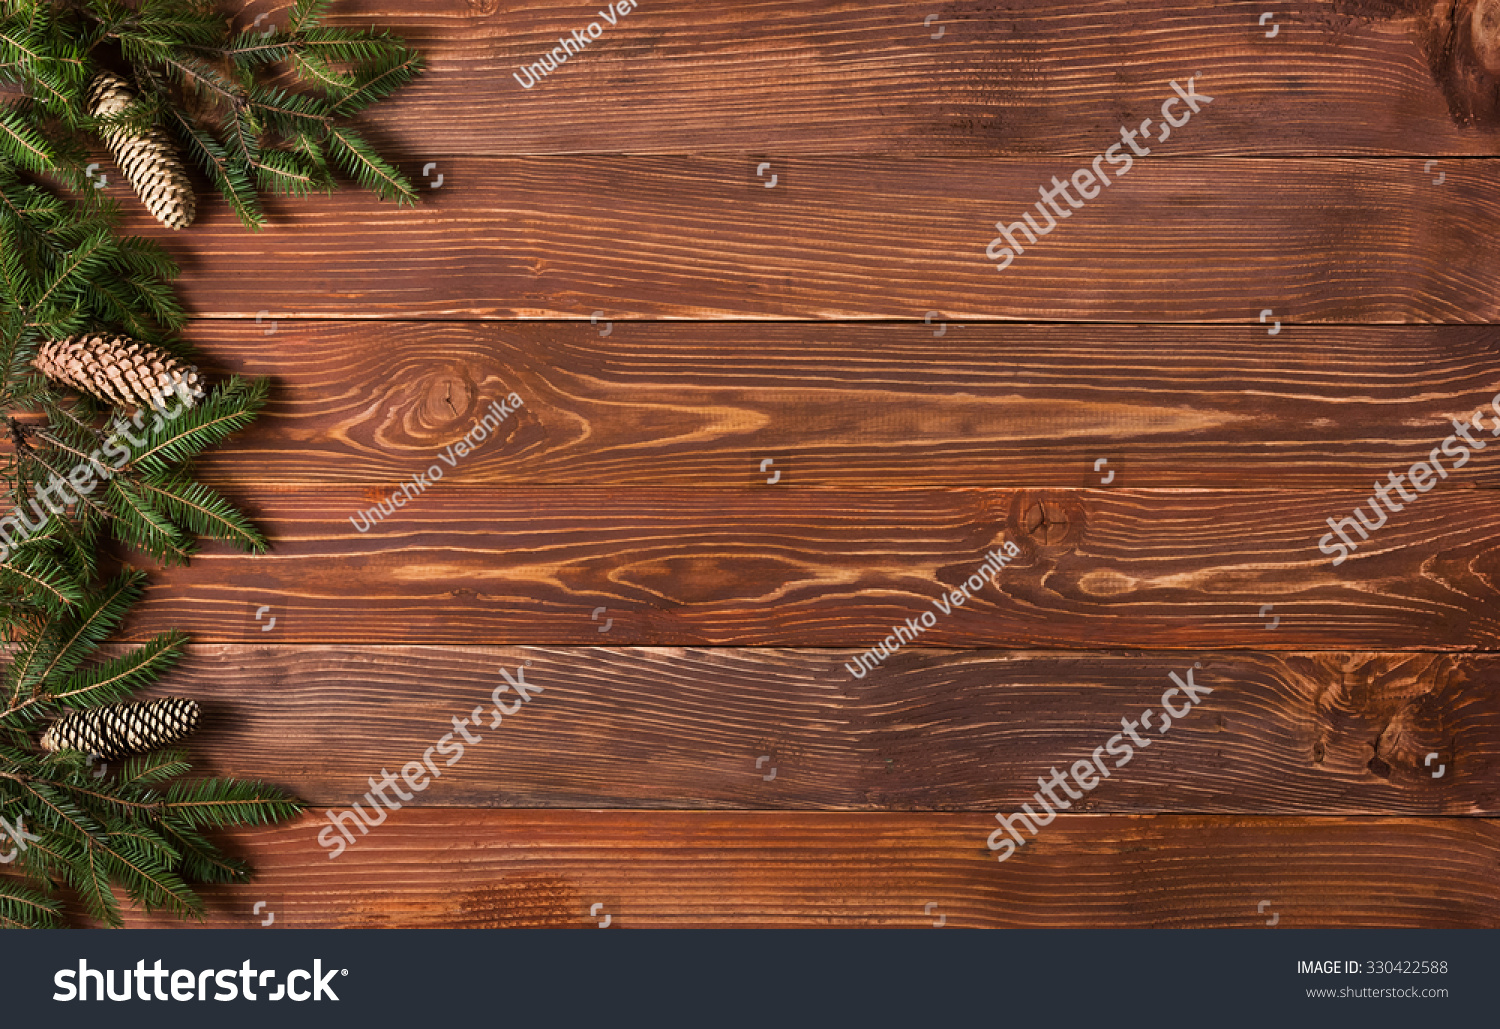 Christmas Rustic Background Vintage Planked Wood Stock Photo ...